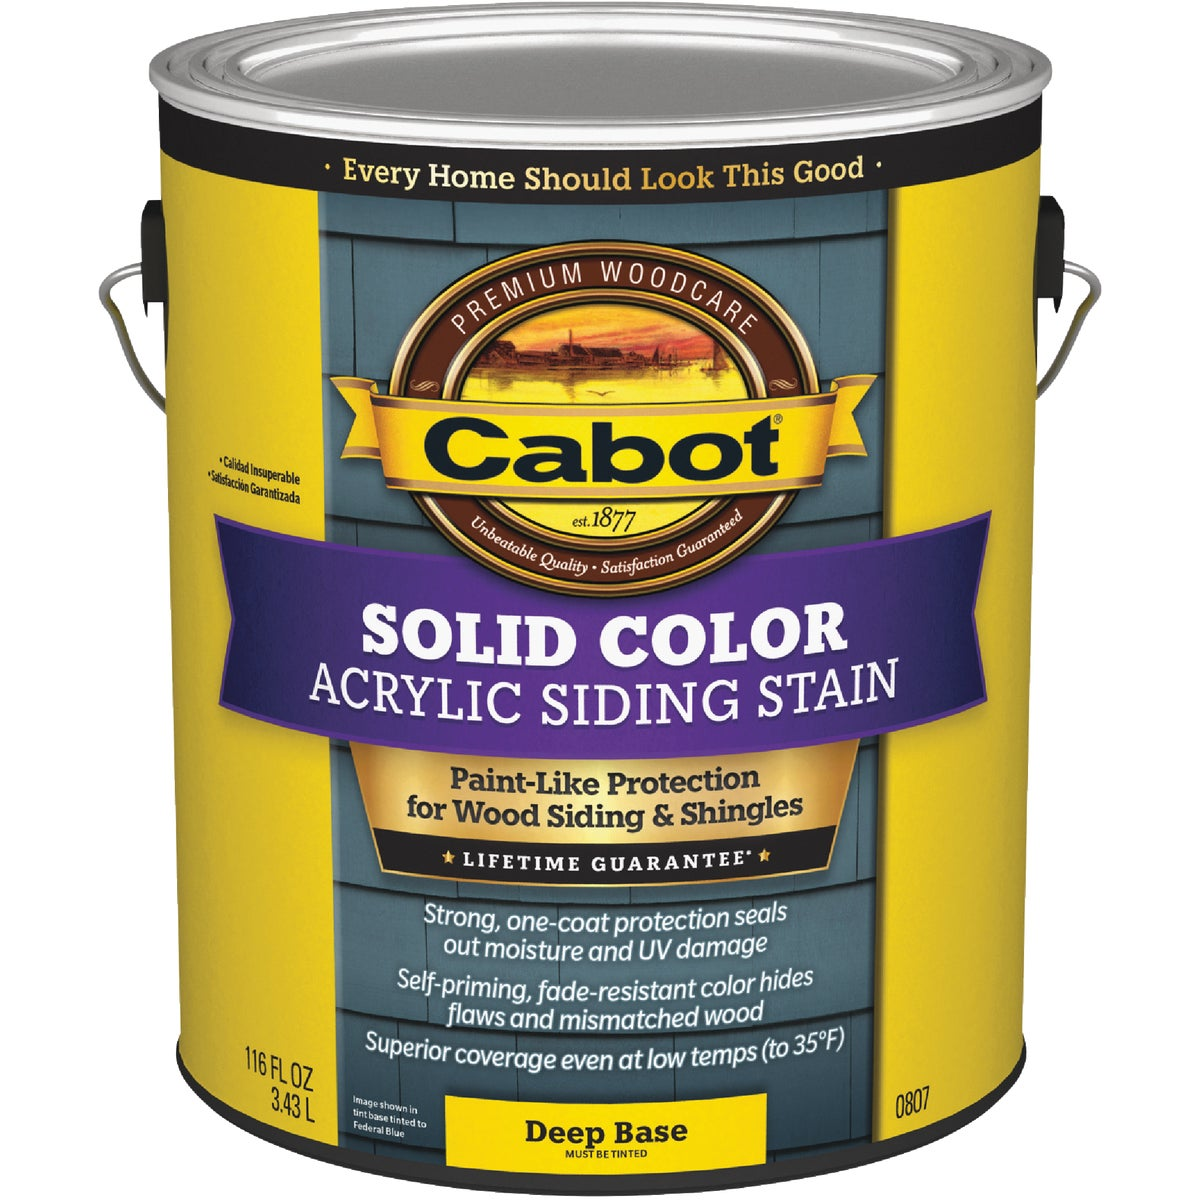 DEEP BS PRO SOLID STAIN - 140.0000807.007 by Valspar Corp